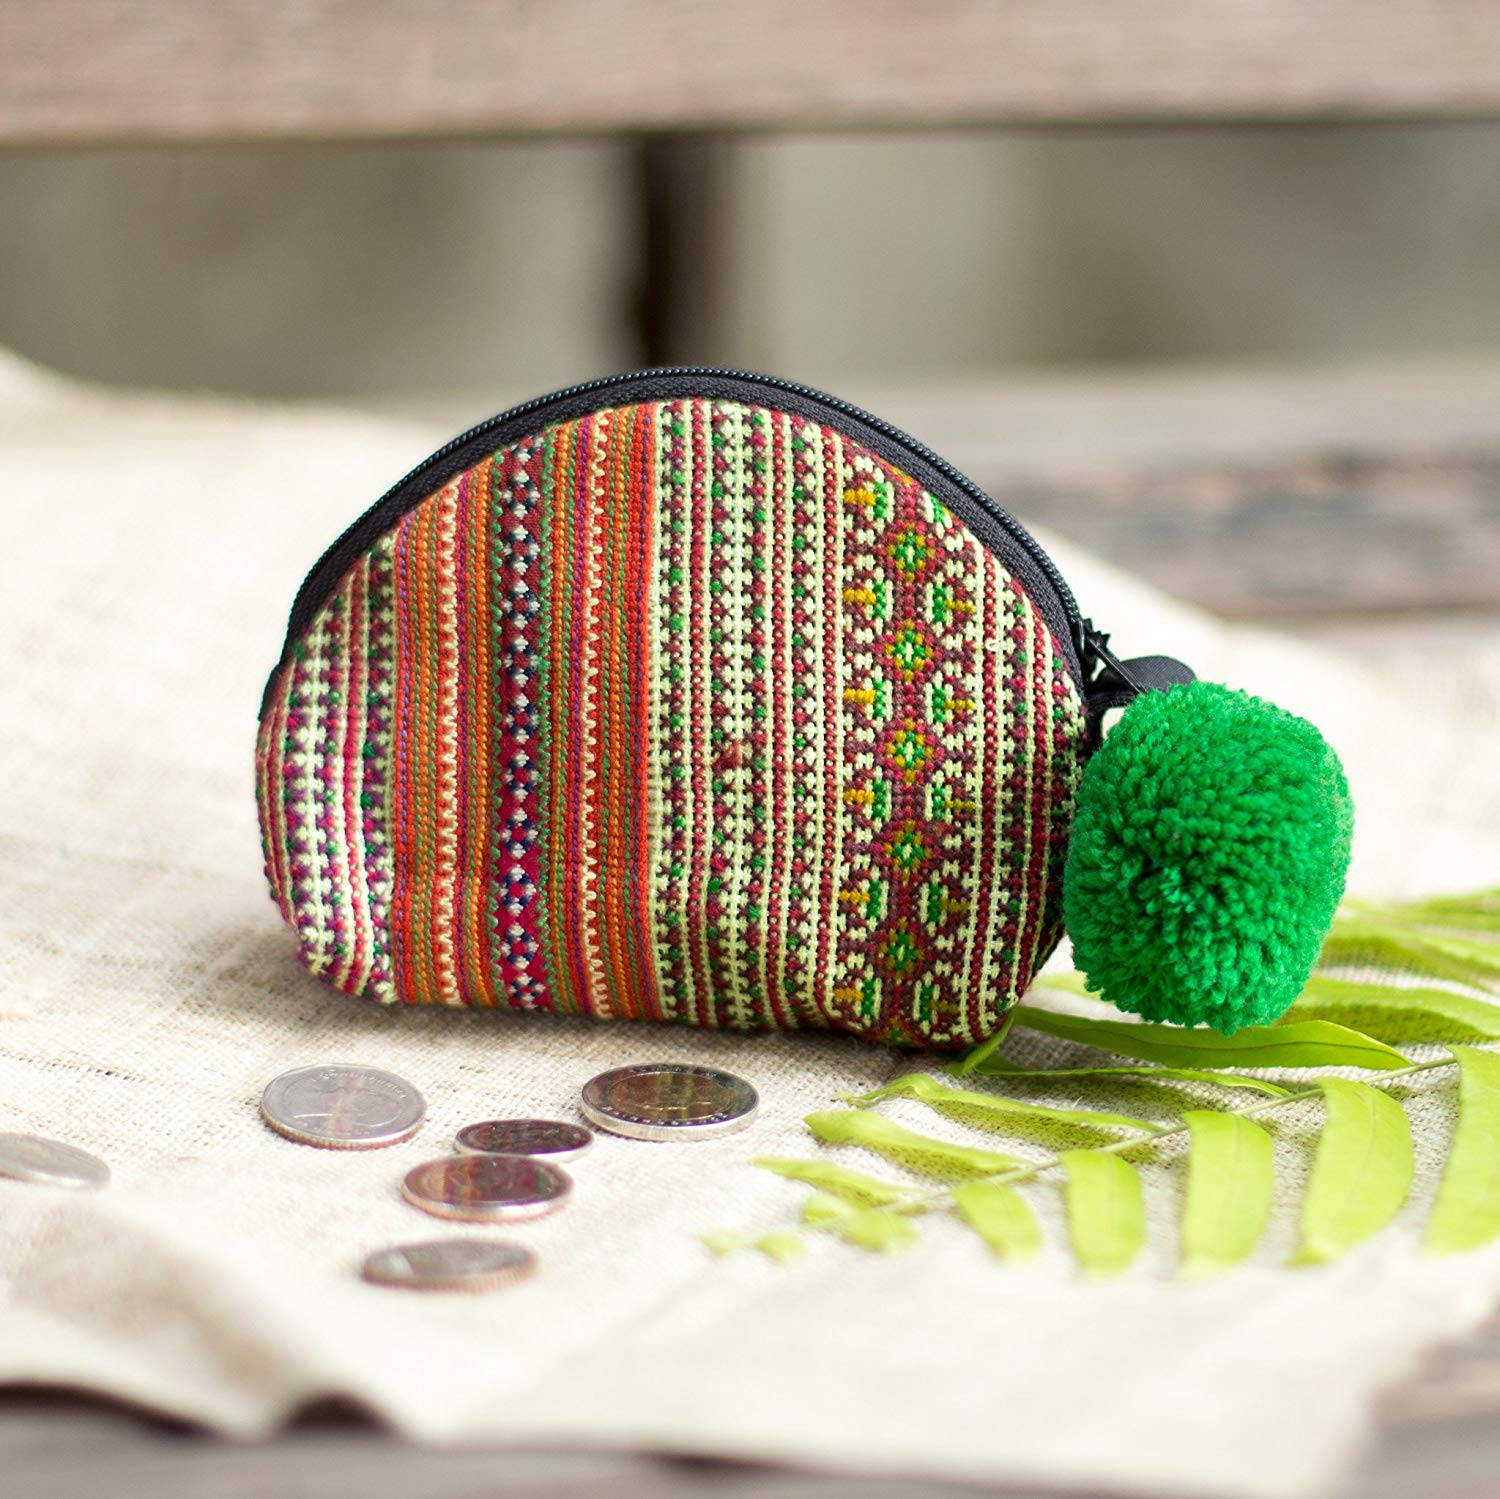 Changnoi Changnoi Unique Vintage Hmong Hill Tribe Embroidered Purse for Women, Green Pom Pom Women Coin Pouch, Gift Purse